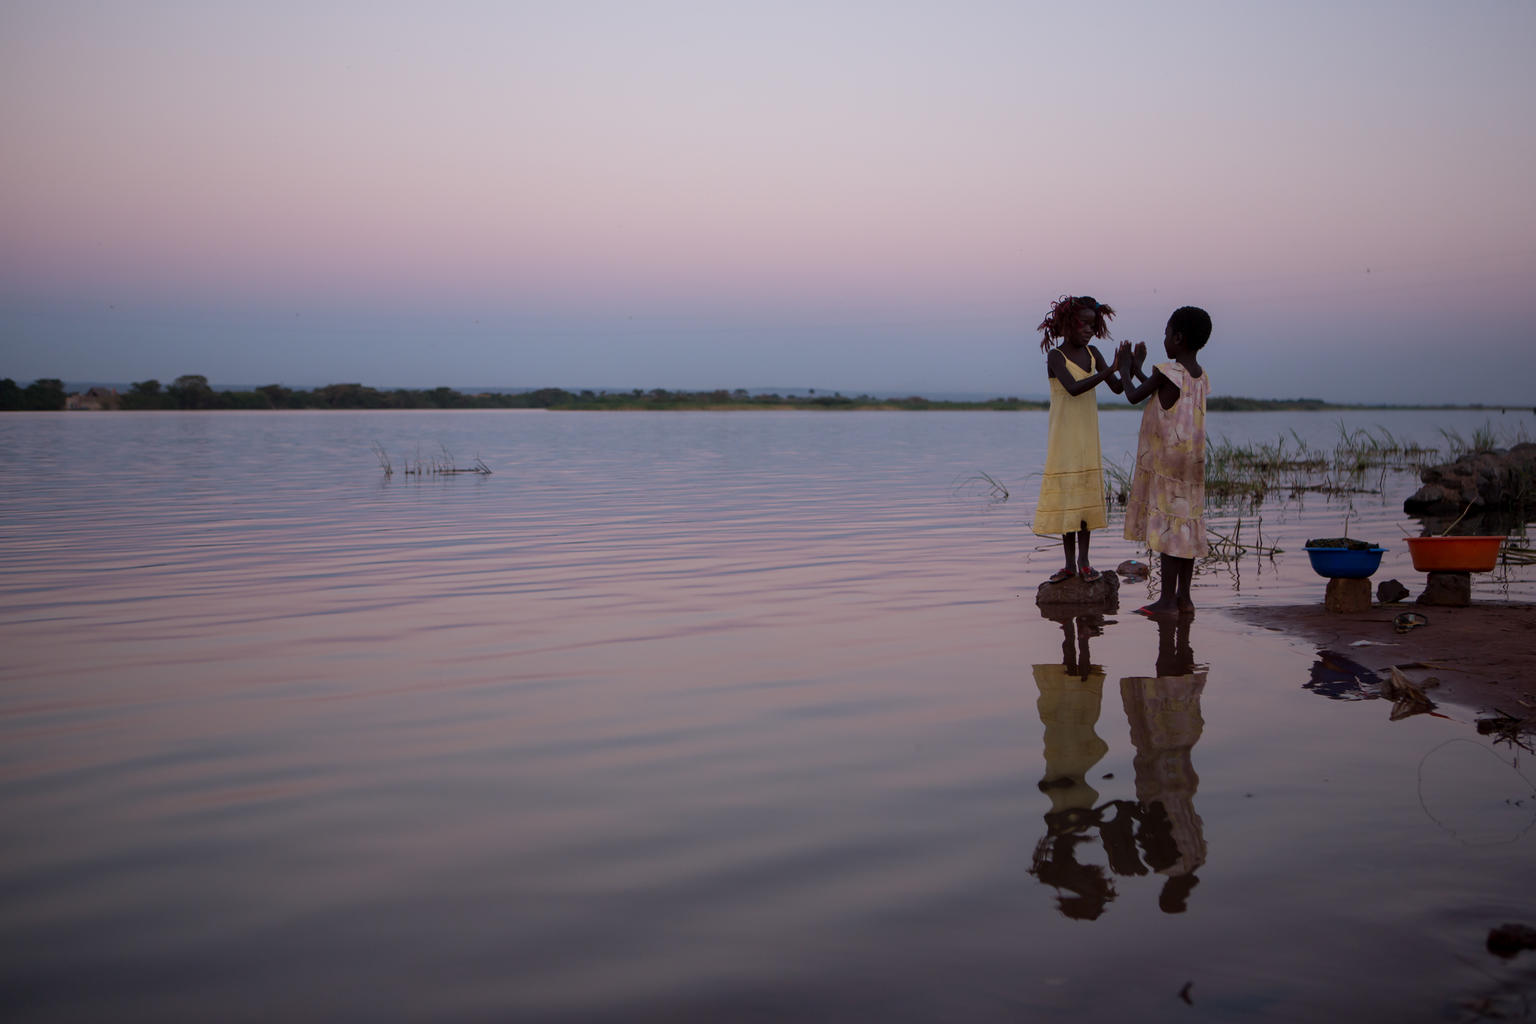 Two young girls have their palms outstretched towards each other, on the banks of a water body.